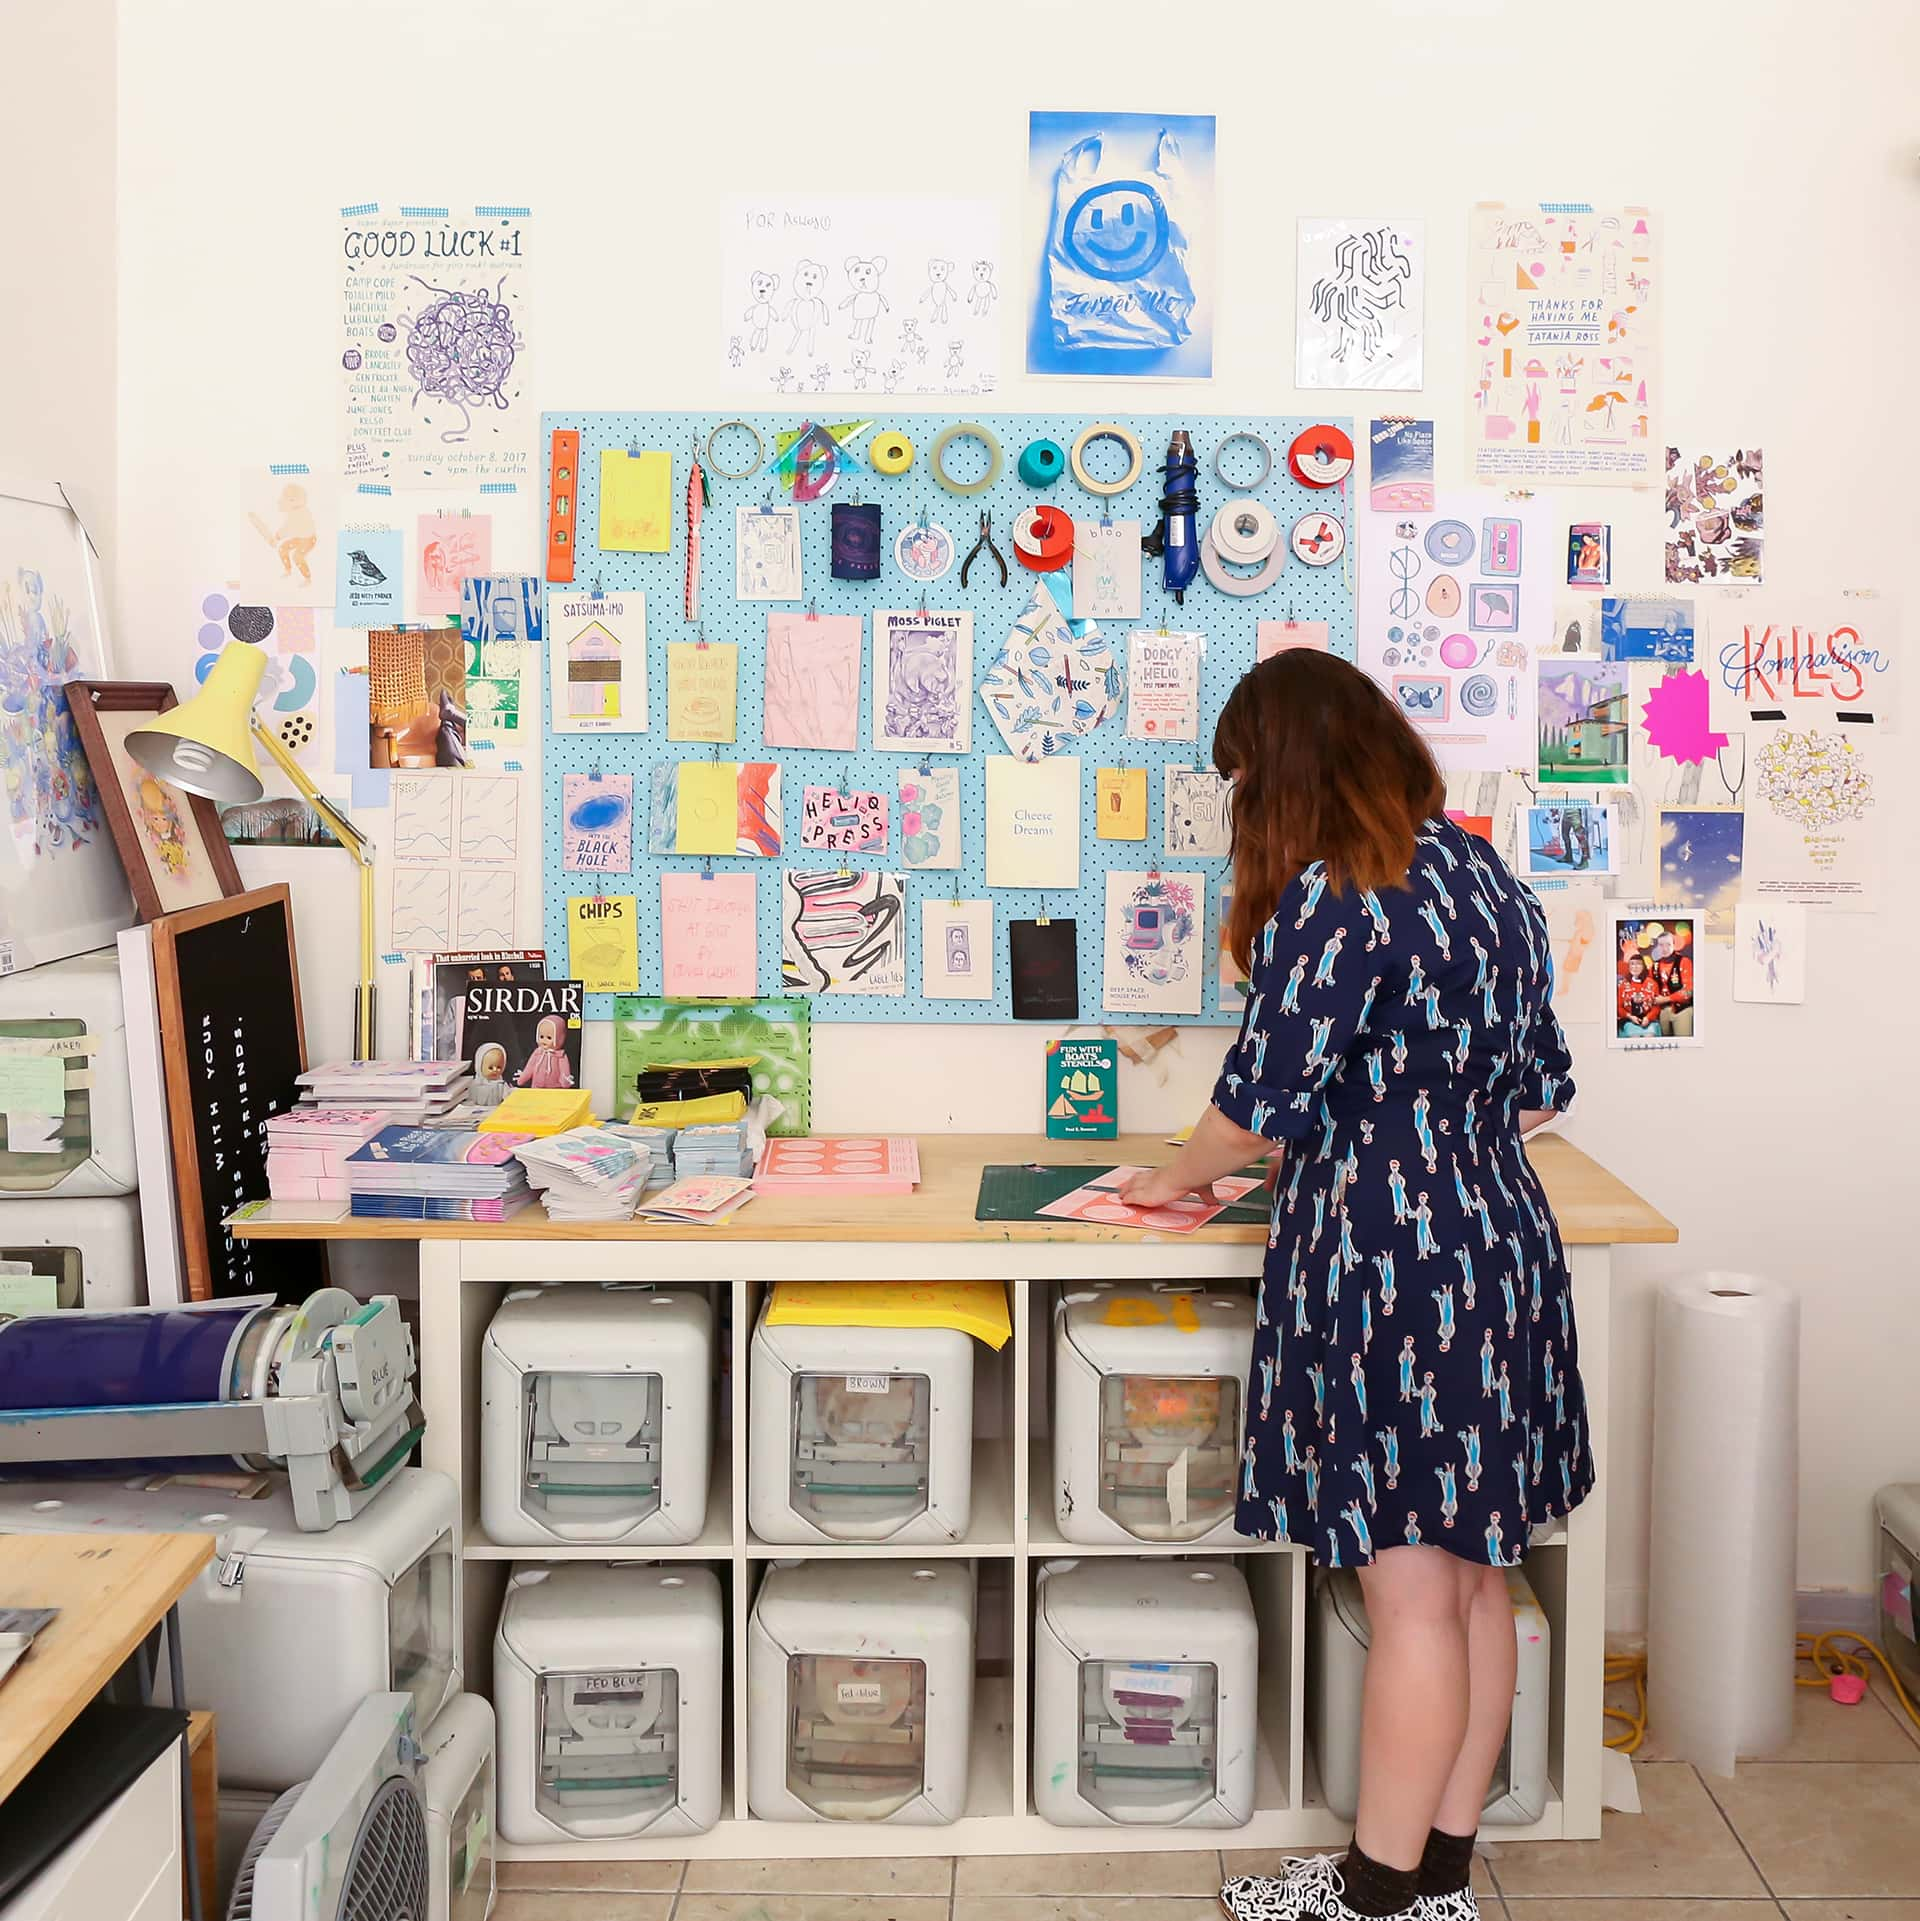 Ashley working in her studio. Photo by Tatanja Ross.